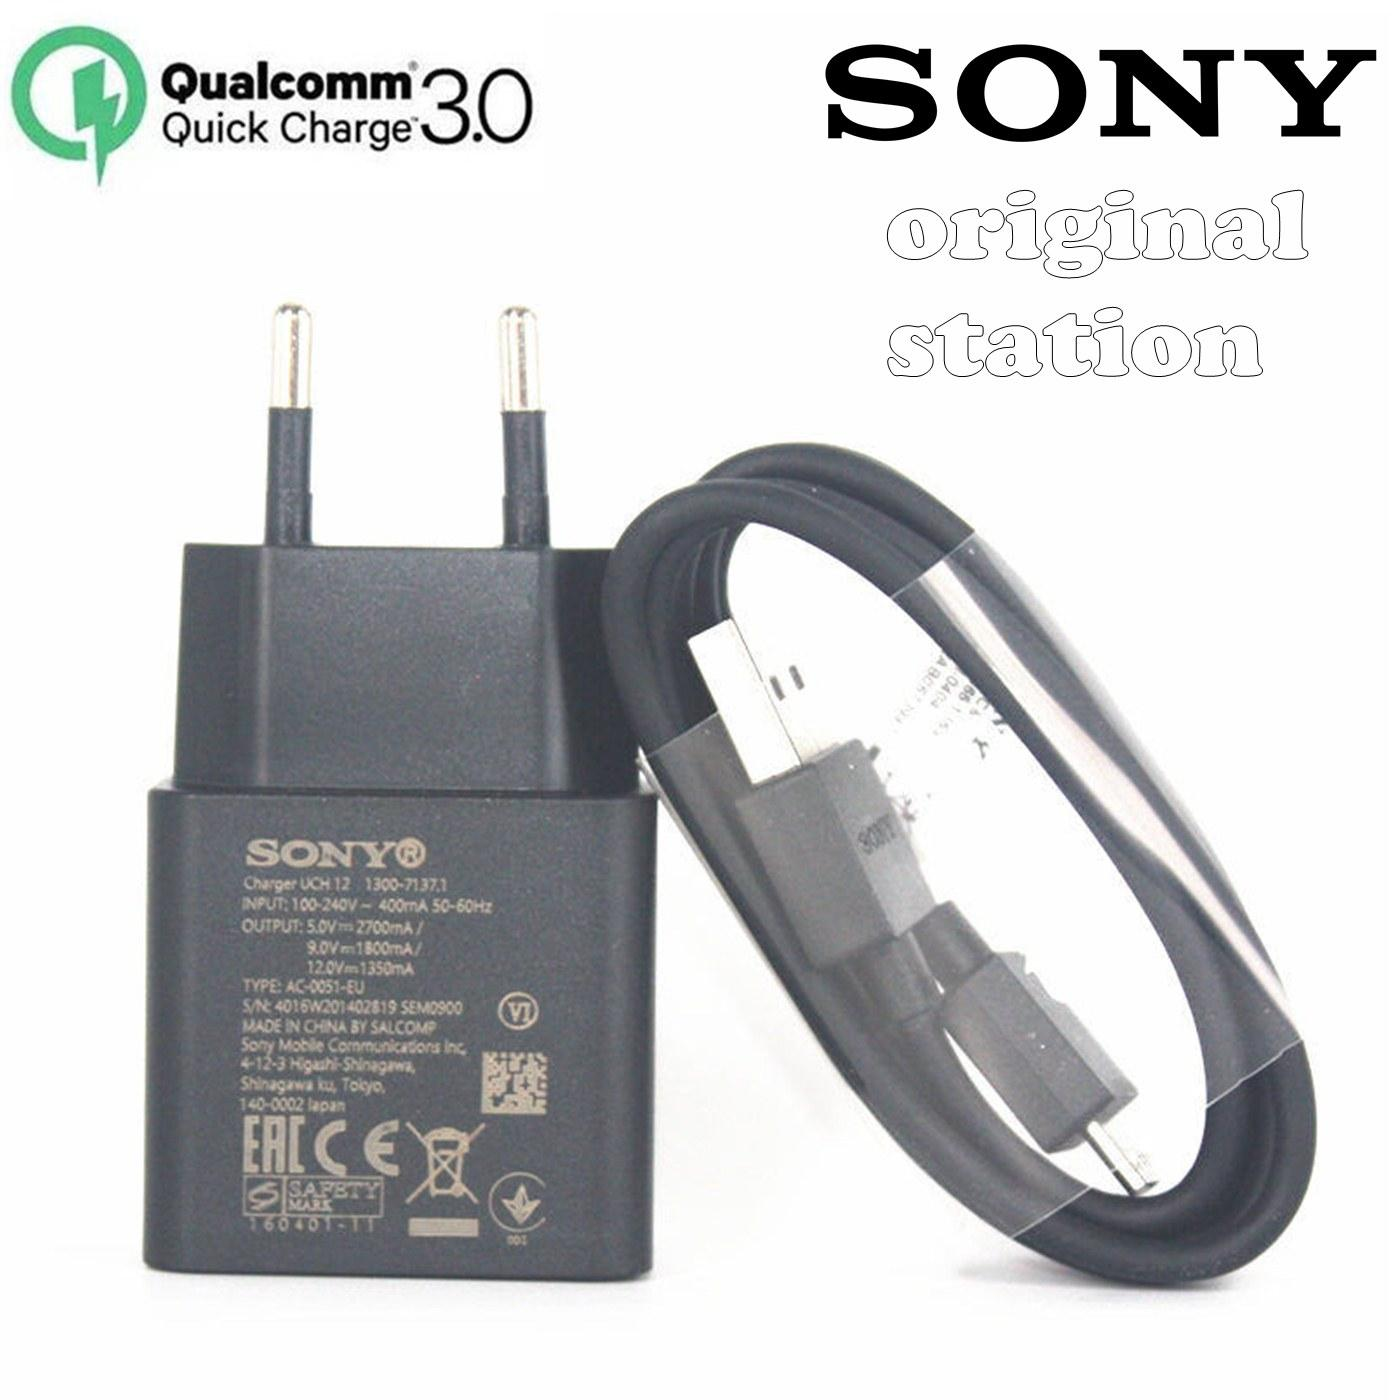 Kabel Charger Spare Part Bolt 21a Fast Charge 3in1 Cable Sony Qualcomm Quick 30 Type C Model Uch 12 For Xperia Xz Xz1 Xzs